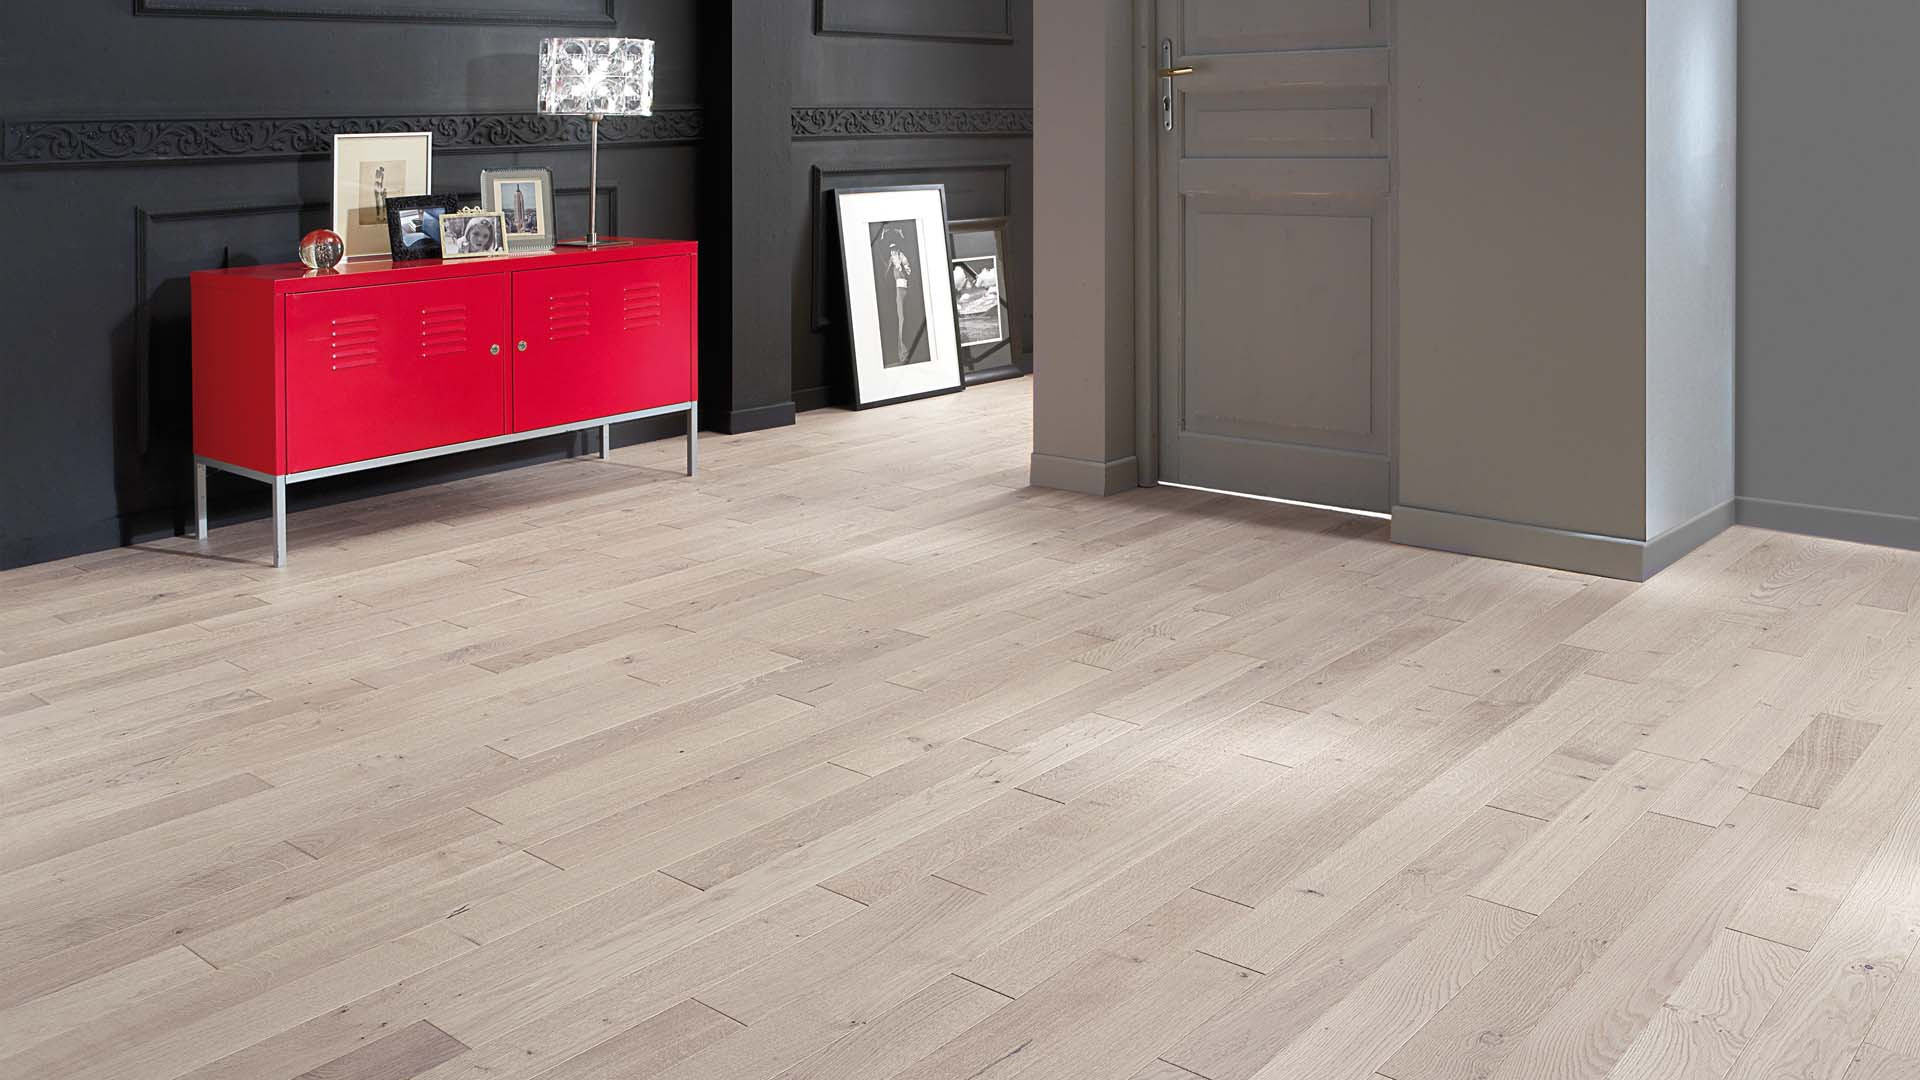 Parquet ch ne authentique linen traviata 90 - Panaget parquet prix ...